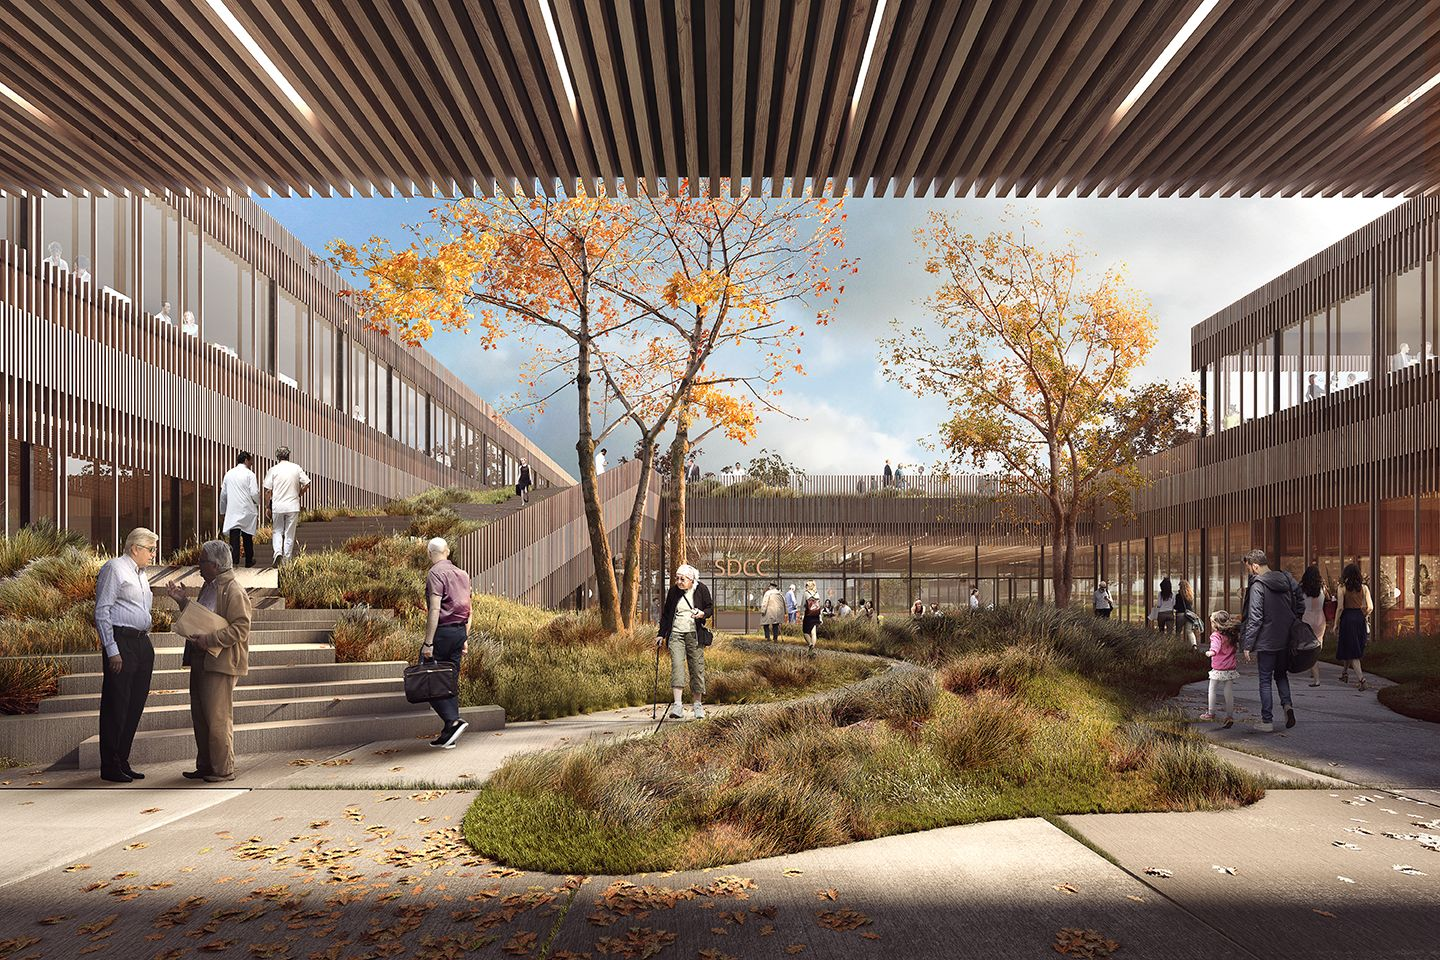 Designed By Vilhelm Lauritzen Architects Mikkelsen Architects The Team Of Cowi A Healthcare Architecture Architecture Visualization Landscape Architect